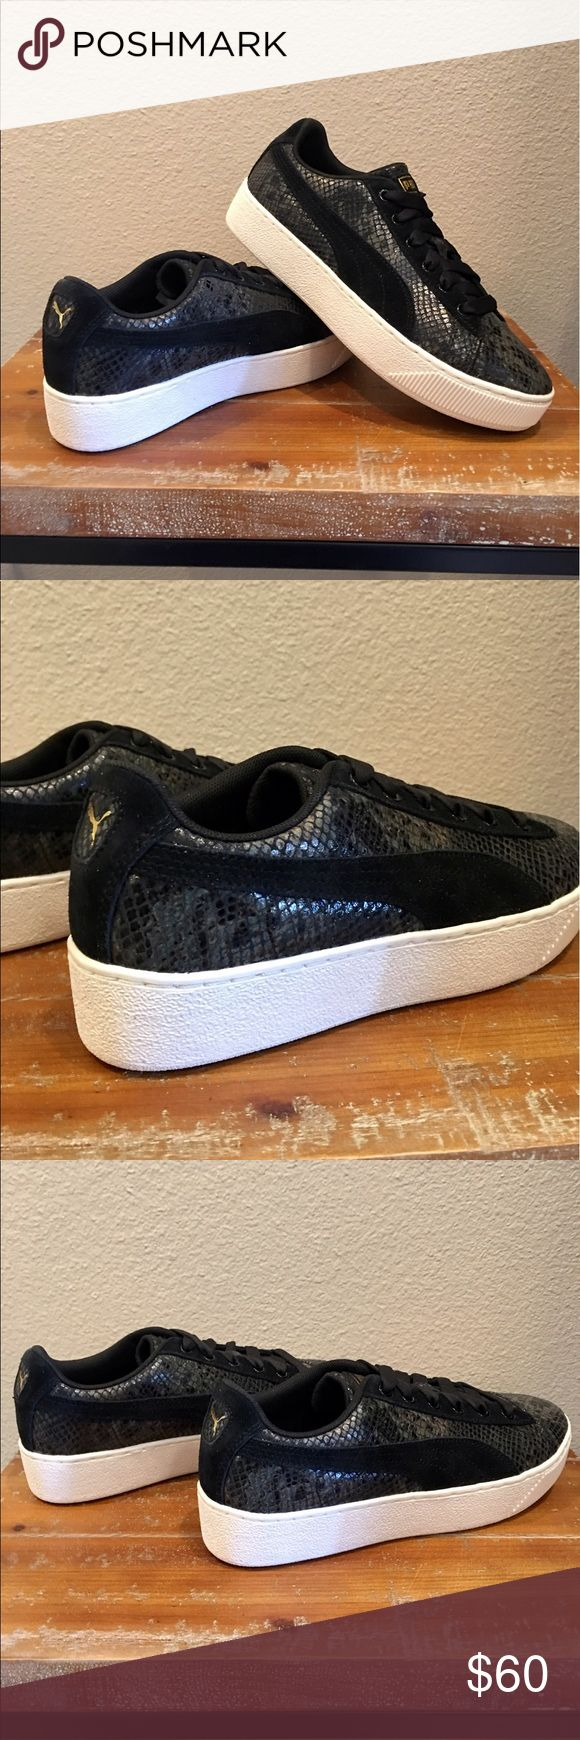 💋SNAKESKIN PLATFORM PUMA'S💋 NWOB. Never worn, Badass kicks for badass you❣️ Black suede puma stripe on iridescent snakeskin uppers, black laces and all white platform walls. A gold puma logo at heel and on tongue to add a touch of lady gangster👌🏼 Mad love ❤️ Women's sizing. Super OG. Puma Shoes Sneakers